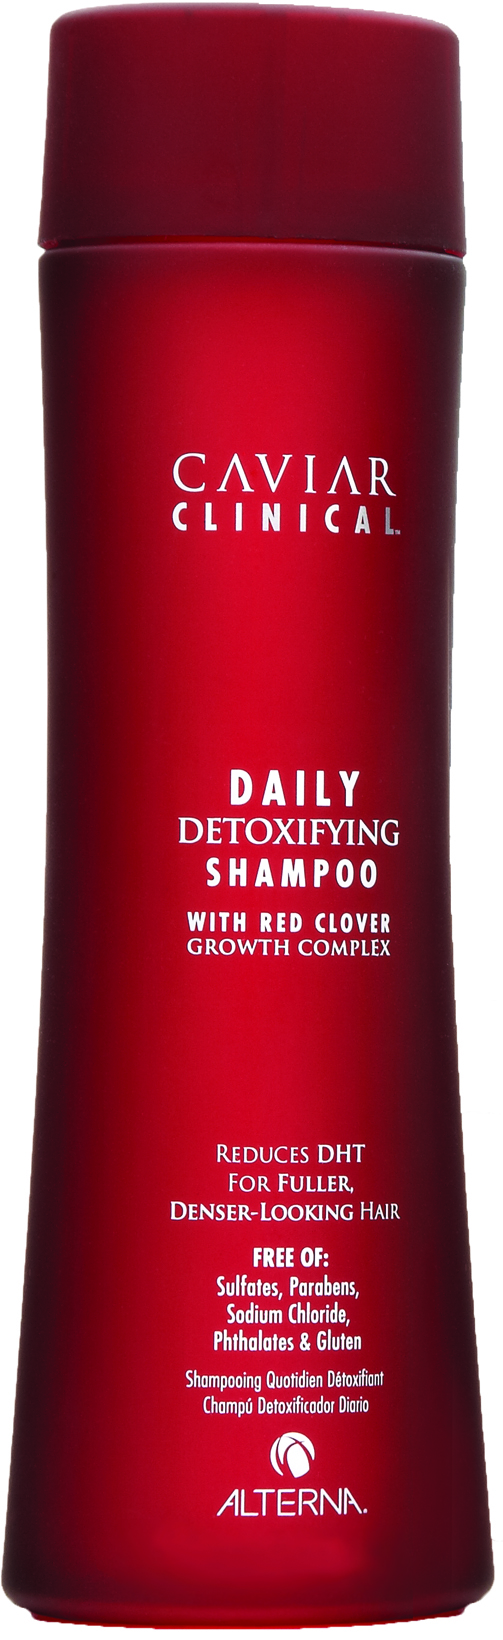 ALTERNA Шампунь-детокс / Clinical Daily Detoxifying Shampoo CAVIAR 250 мл